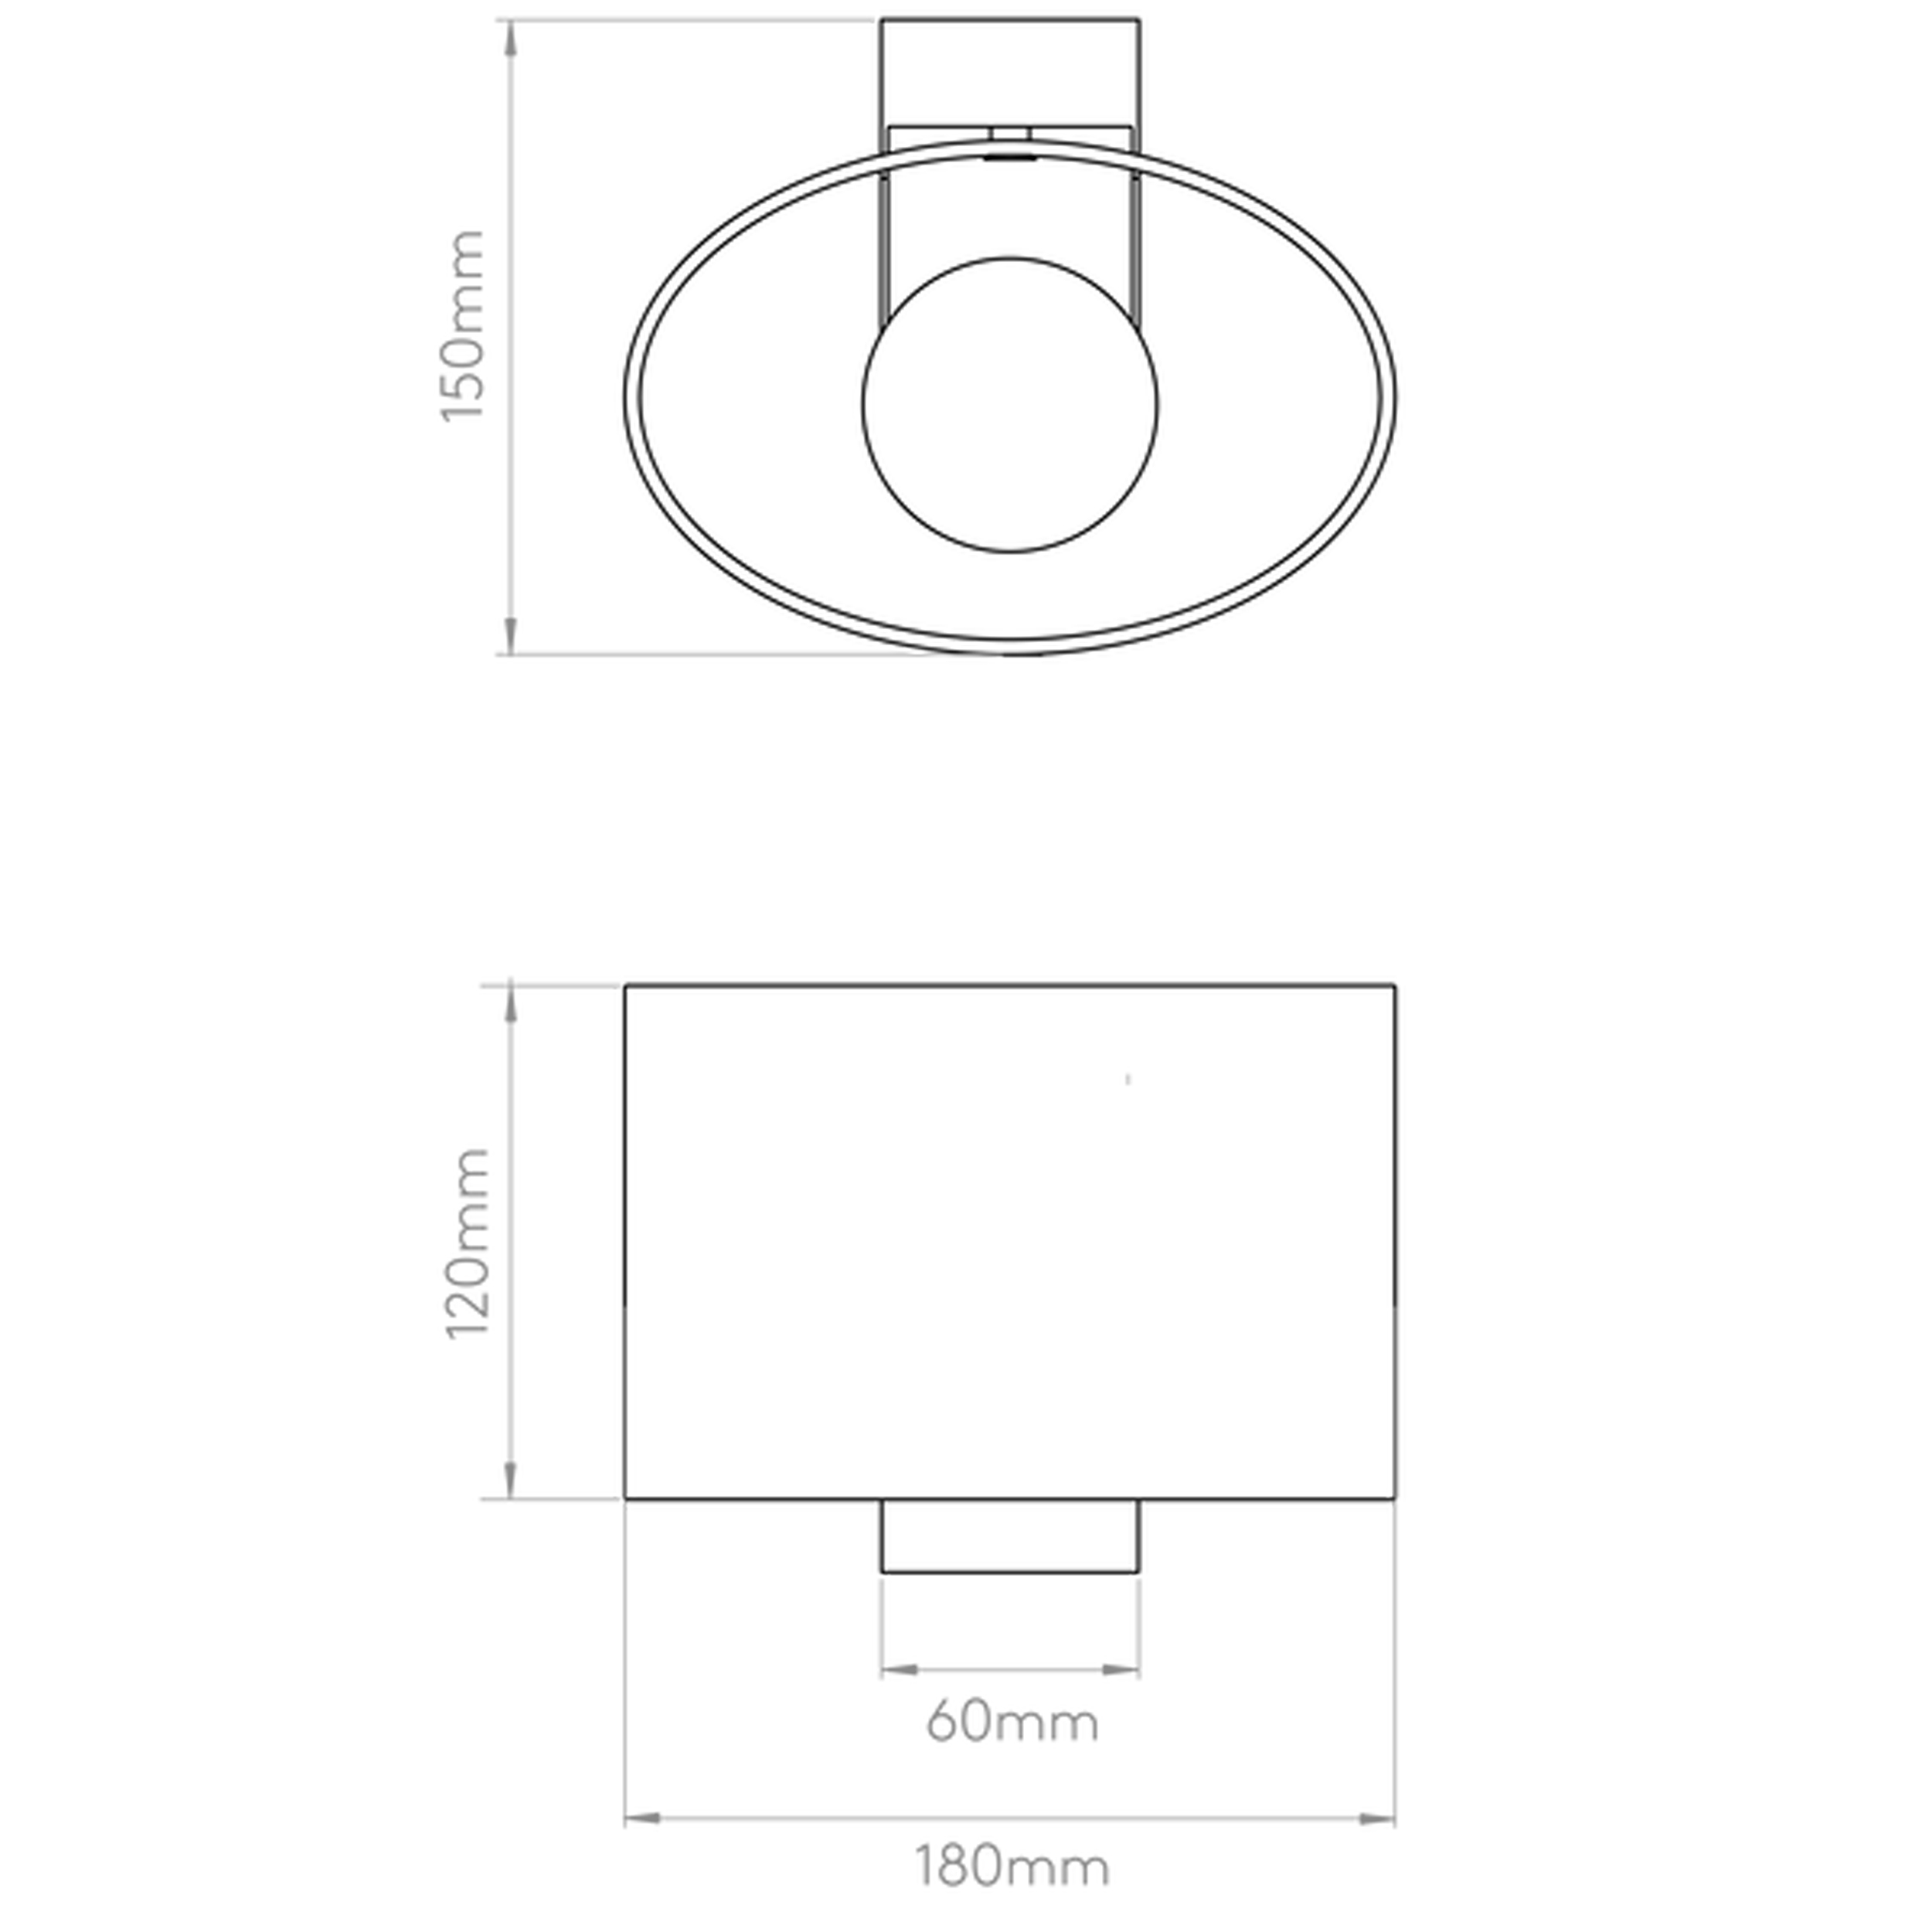 Astro Siena Oval Wall Light Line Drawing